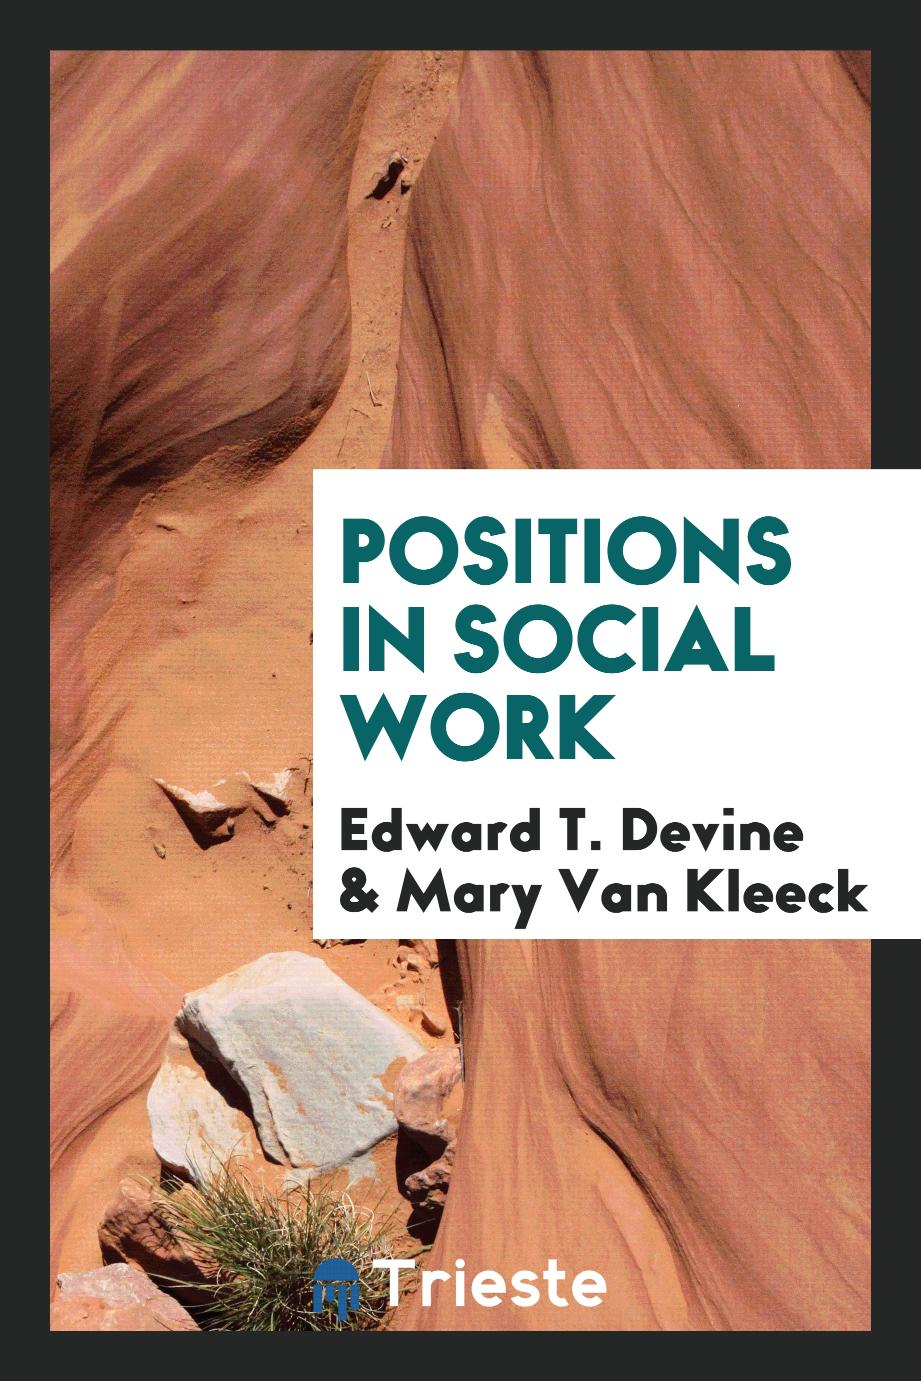 Positions in social work